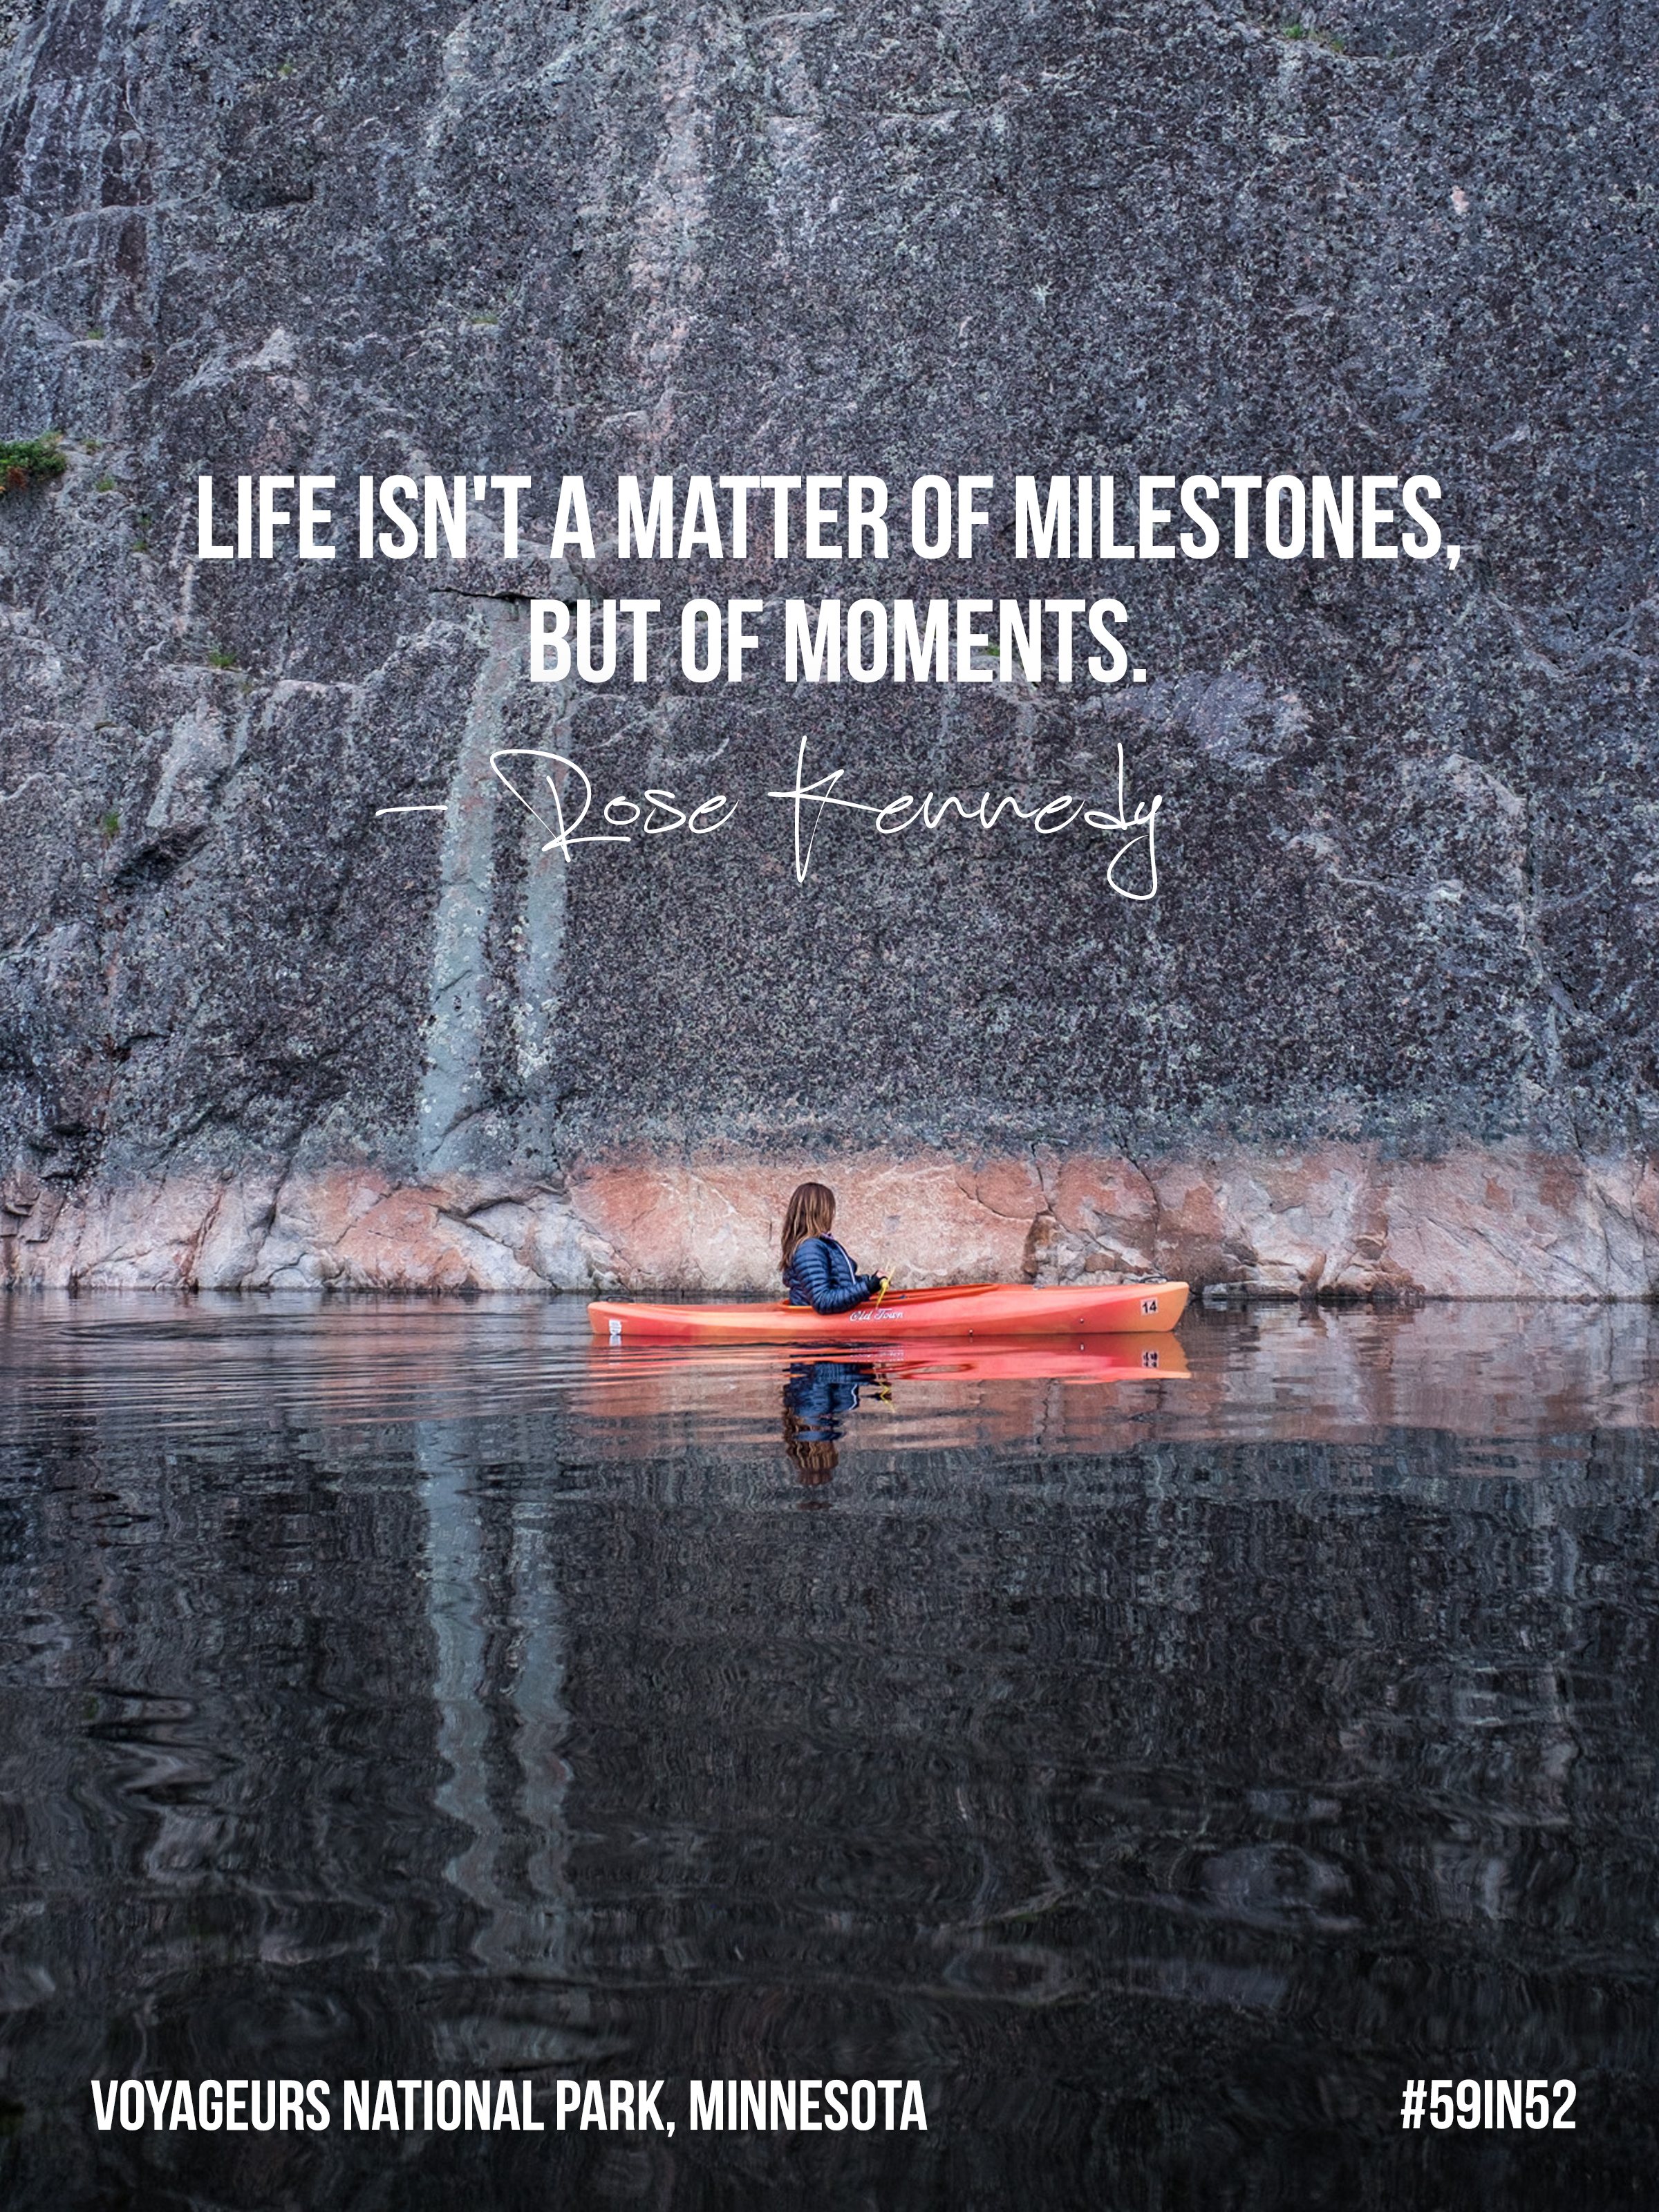 'Life isn't a matter of milestones, but of moments.' - Rose Kennedy